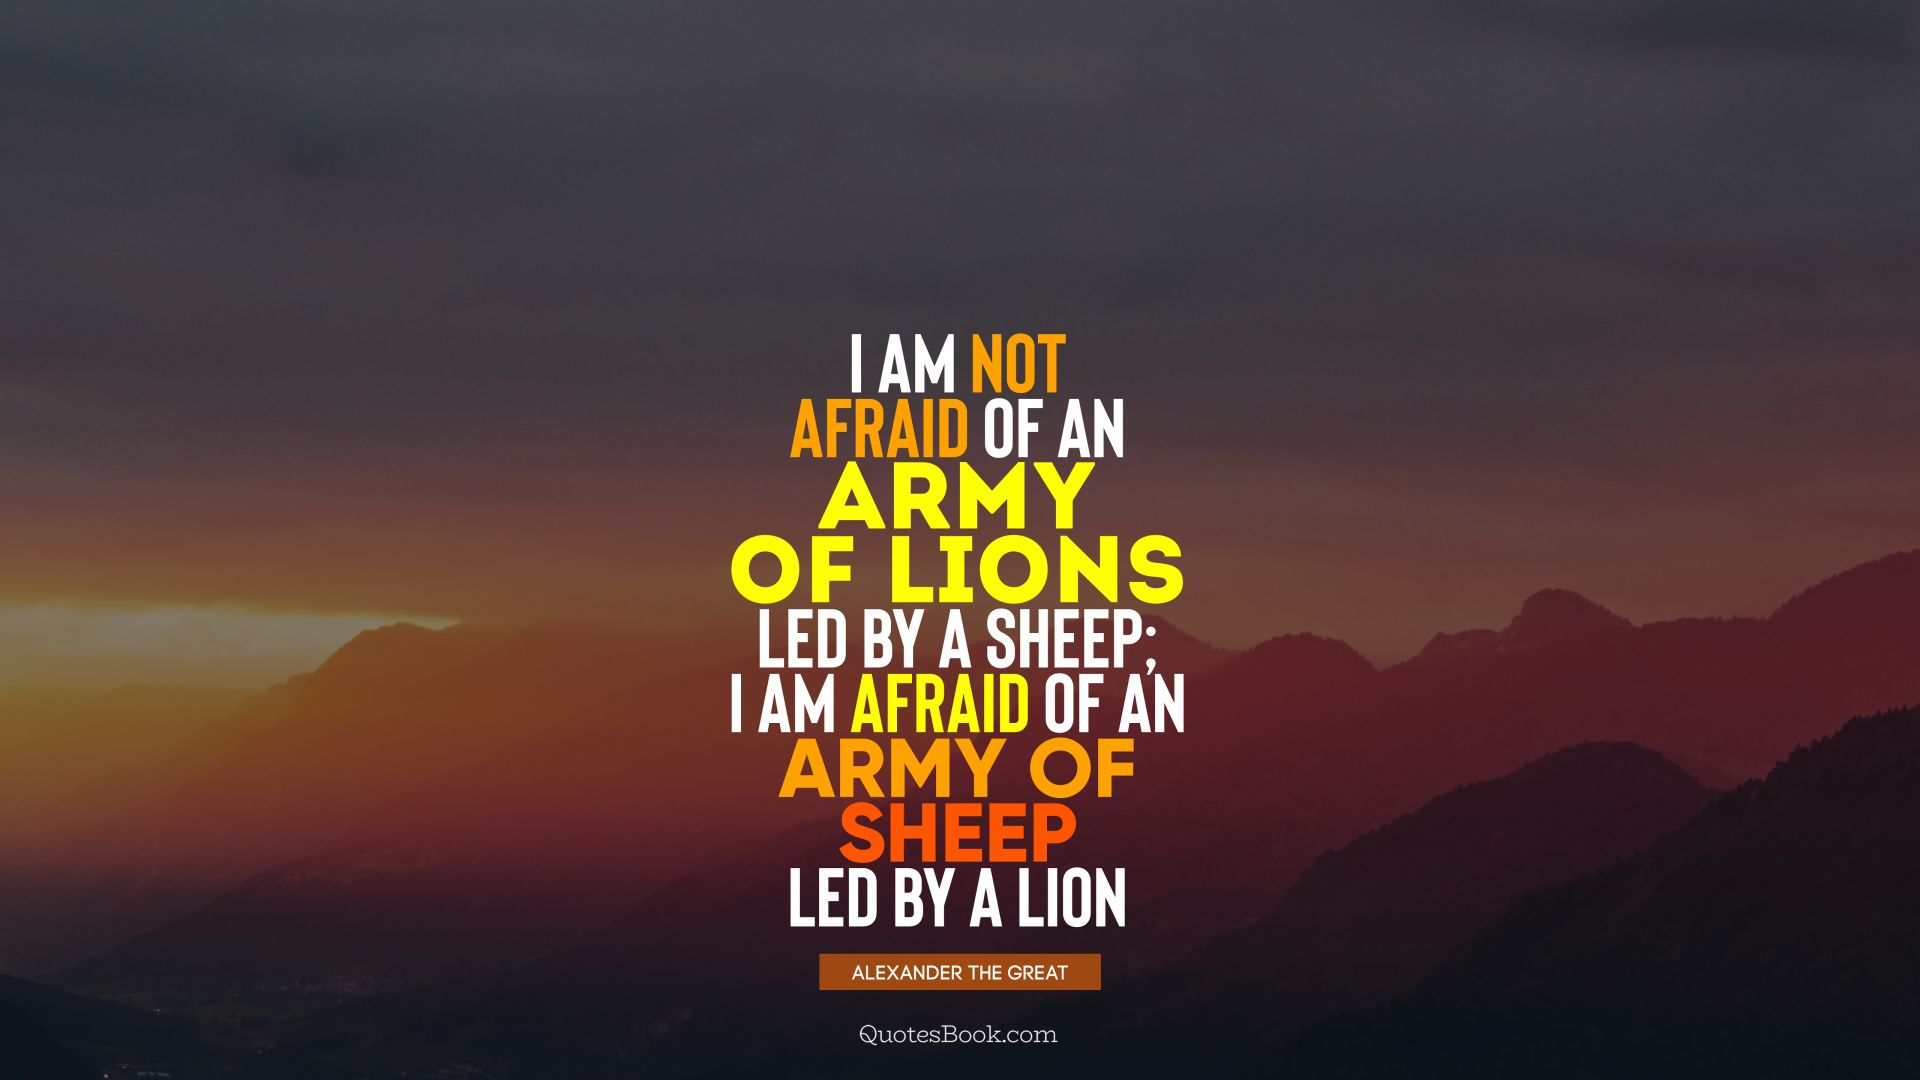 I am not afraid of an army of lions led by a sheep; I am afraid of an army of sheep led by a lion. - Quote by Alexander the Great